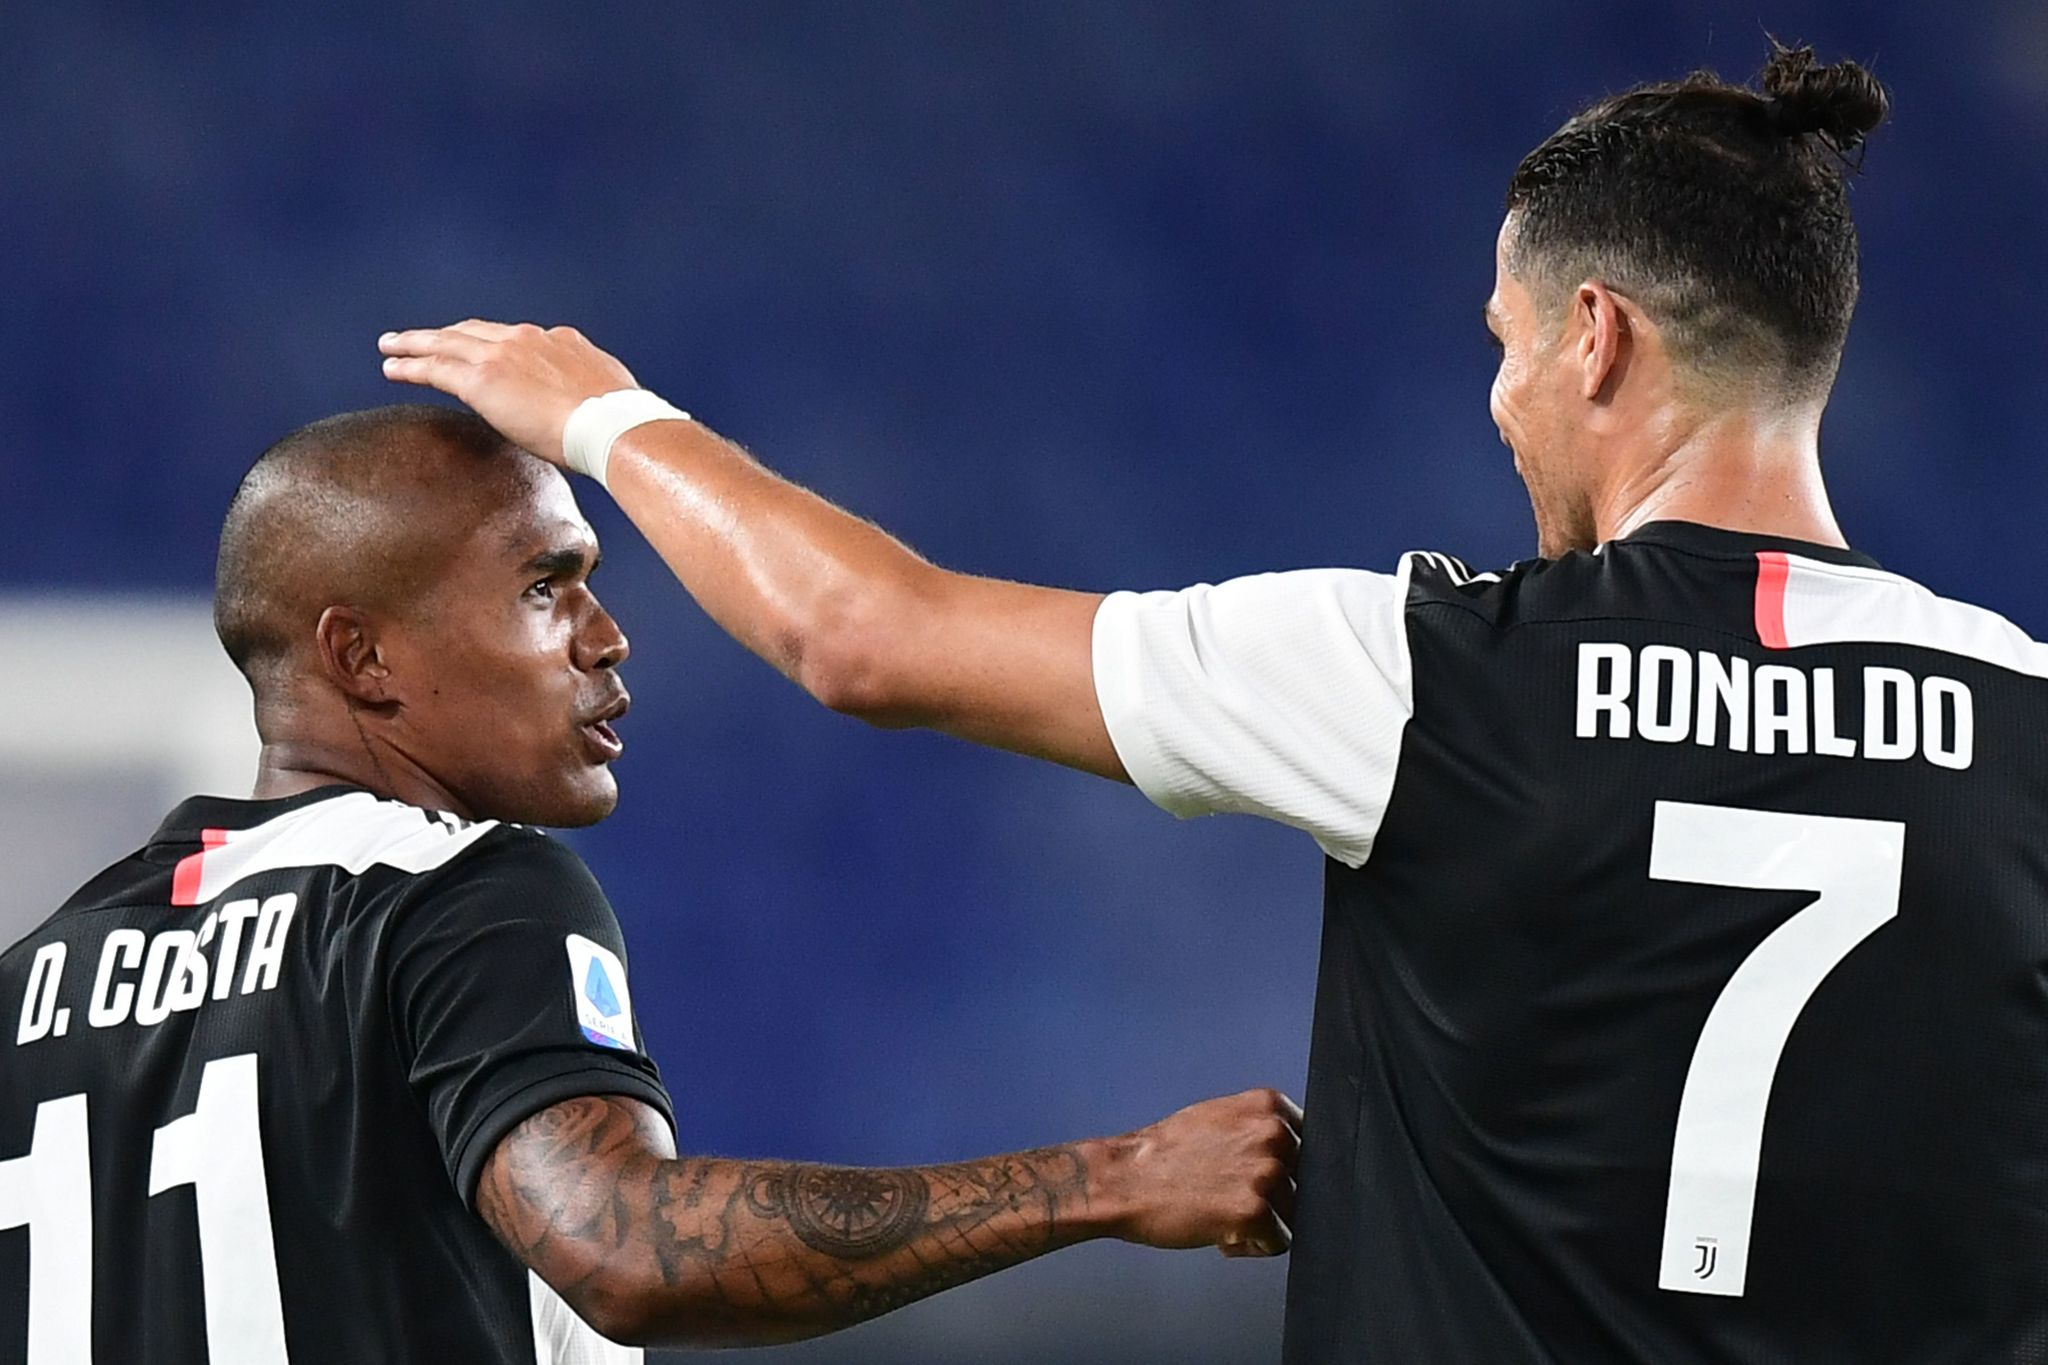 Juventus Brazilian forward lt;HIT gt;Douglas lt;/HIT gt; lt;HIT gt;Costa lt;/HIT gt; (L) celebrates with Juventus Portuguese forward Cristiano Ronaldo after scoring during the Italian Serie A football match Genoa vs Juventus played on June 30, 2020 behind closed doors at the Luigi-Ferraris stadium in Genoa, as the country eases its lockdown aimed at curbing the spread of the COVID-19 infection, caused by the novel coronavirus. (Photo by Miguel MEDINA / AFP)